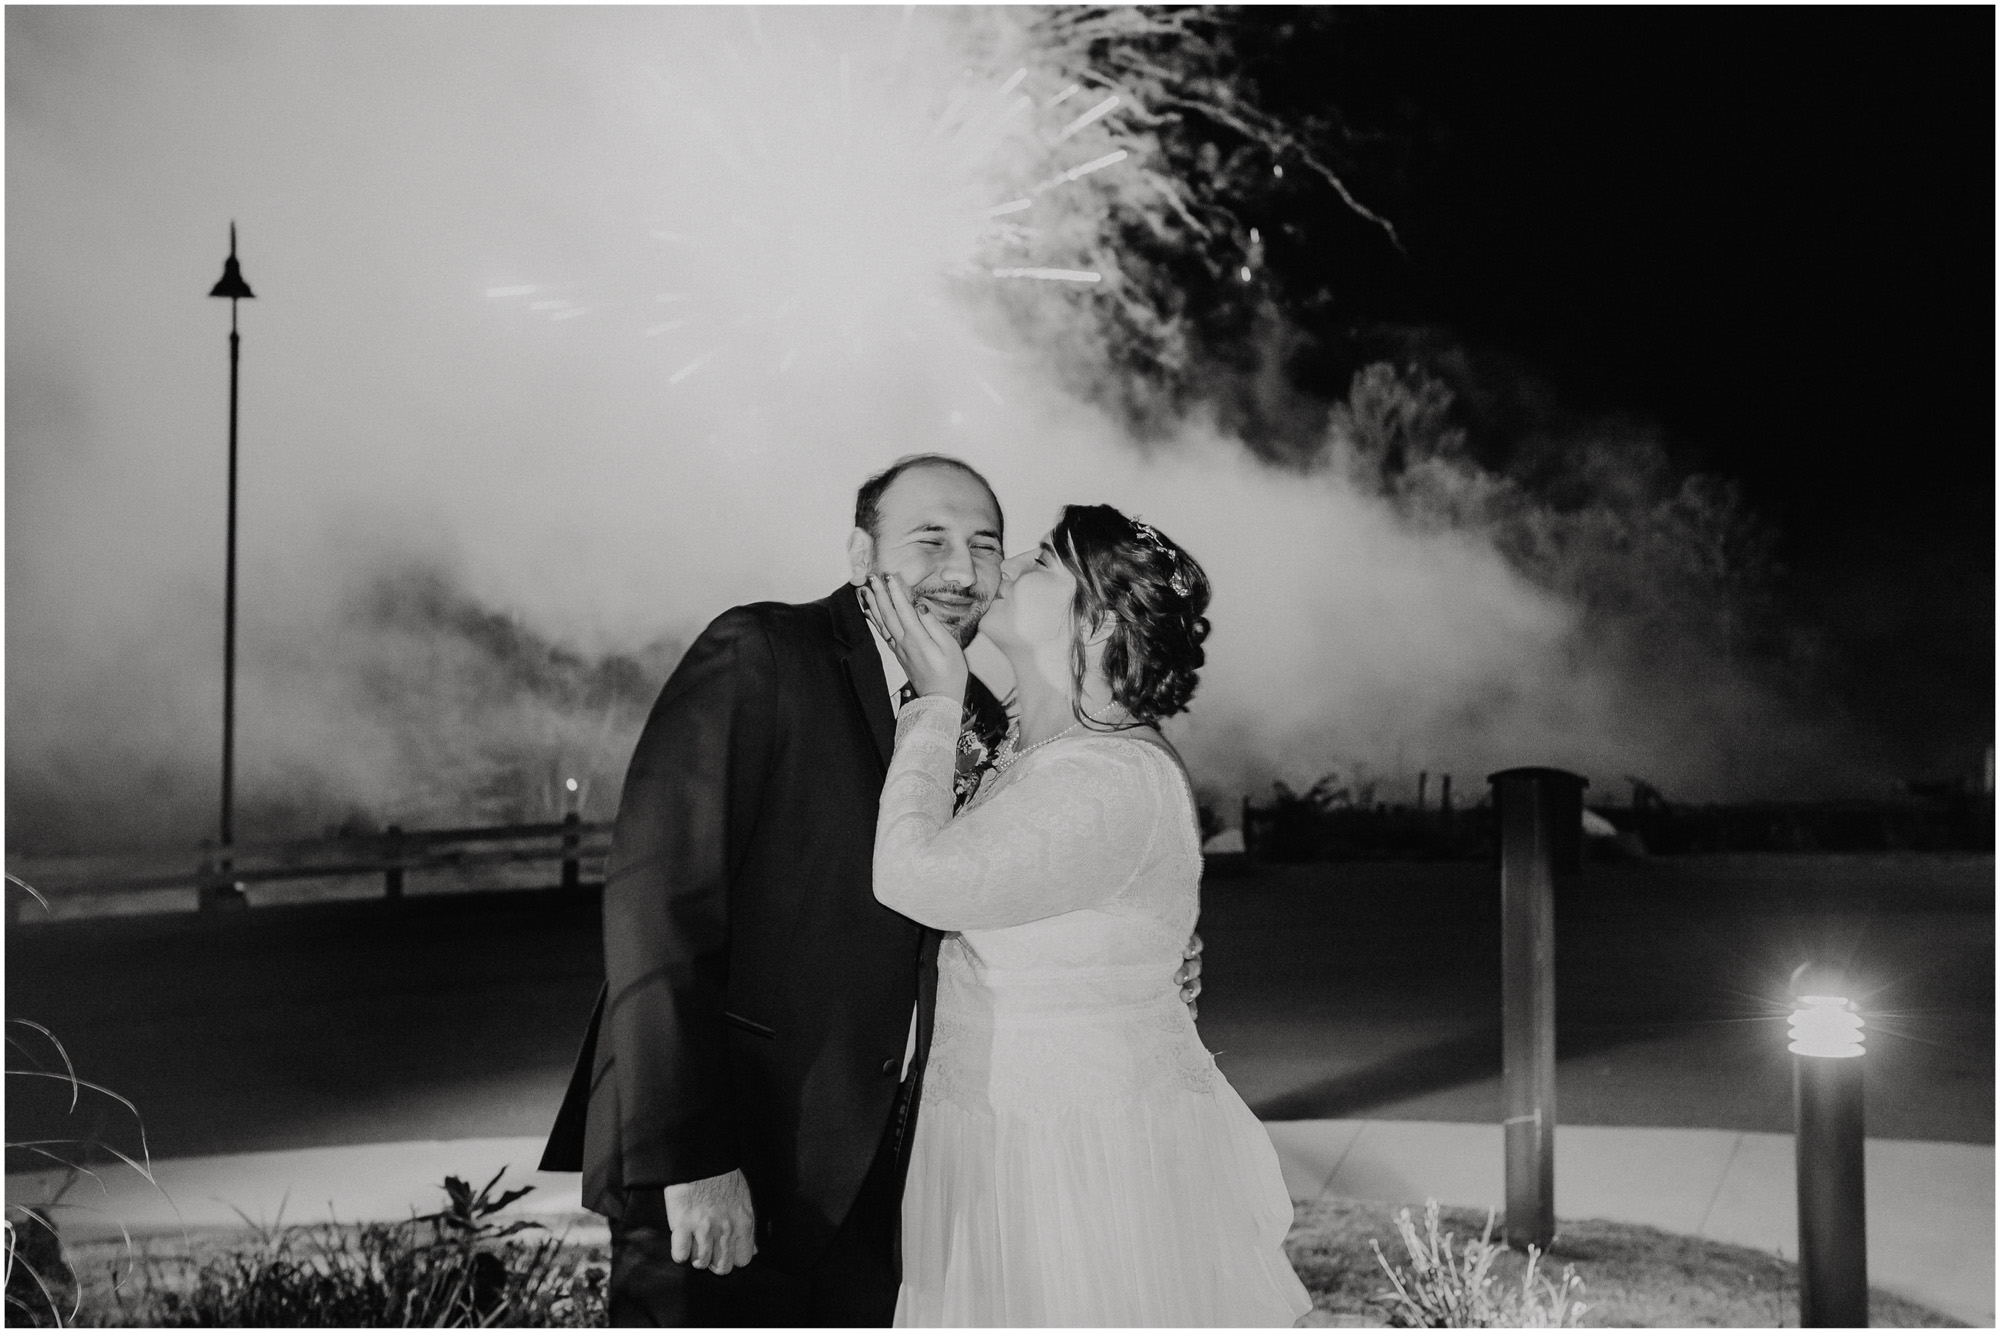 Bride kisses groom's cheek under fireworks during wedding reception - by Ashleigh Laureen Photography at LaBelle Winery in Amherst, New Hampshire